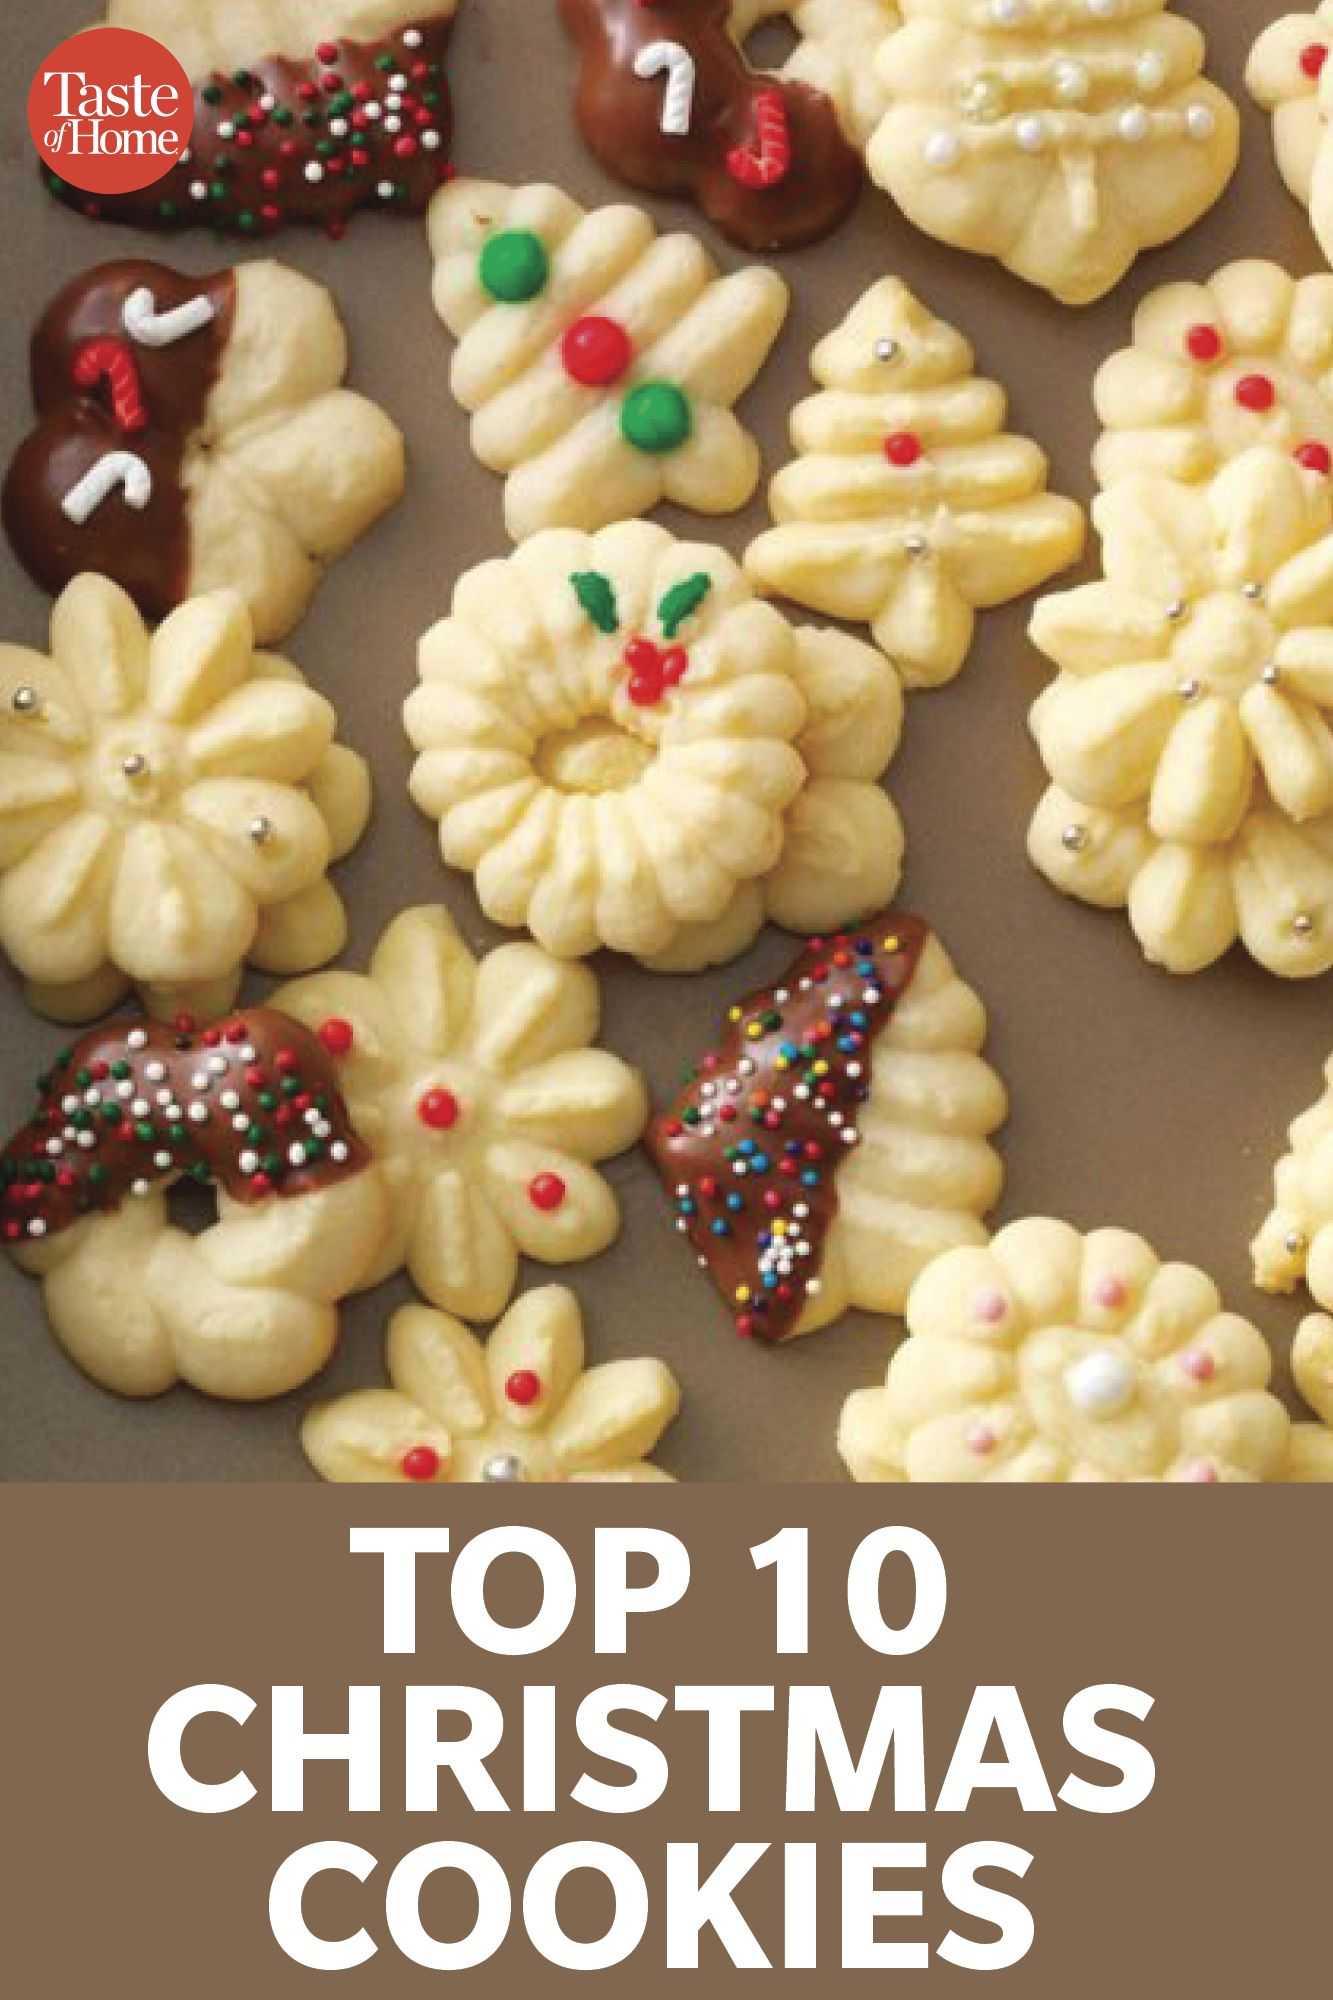 Our Top 10 Christmas Cookie Recipes in 2020 | Cookies recipes